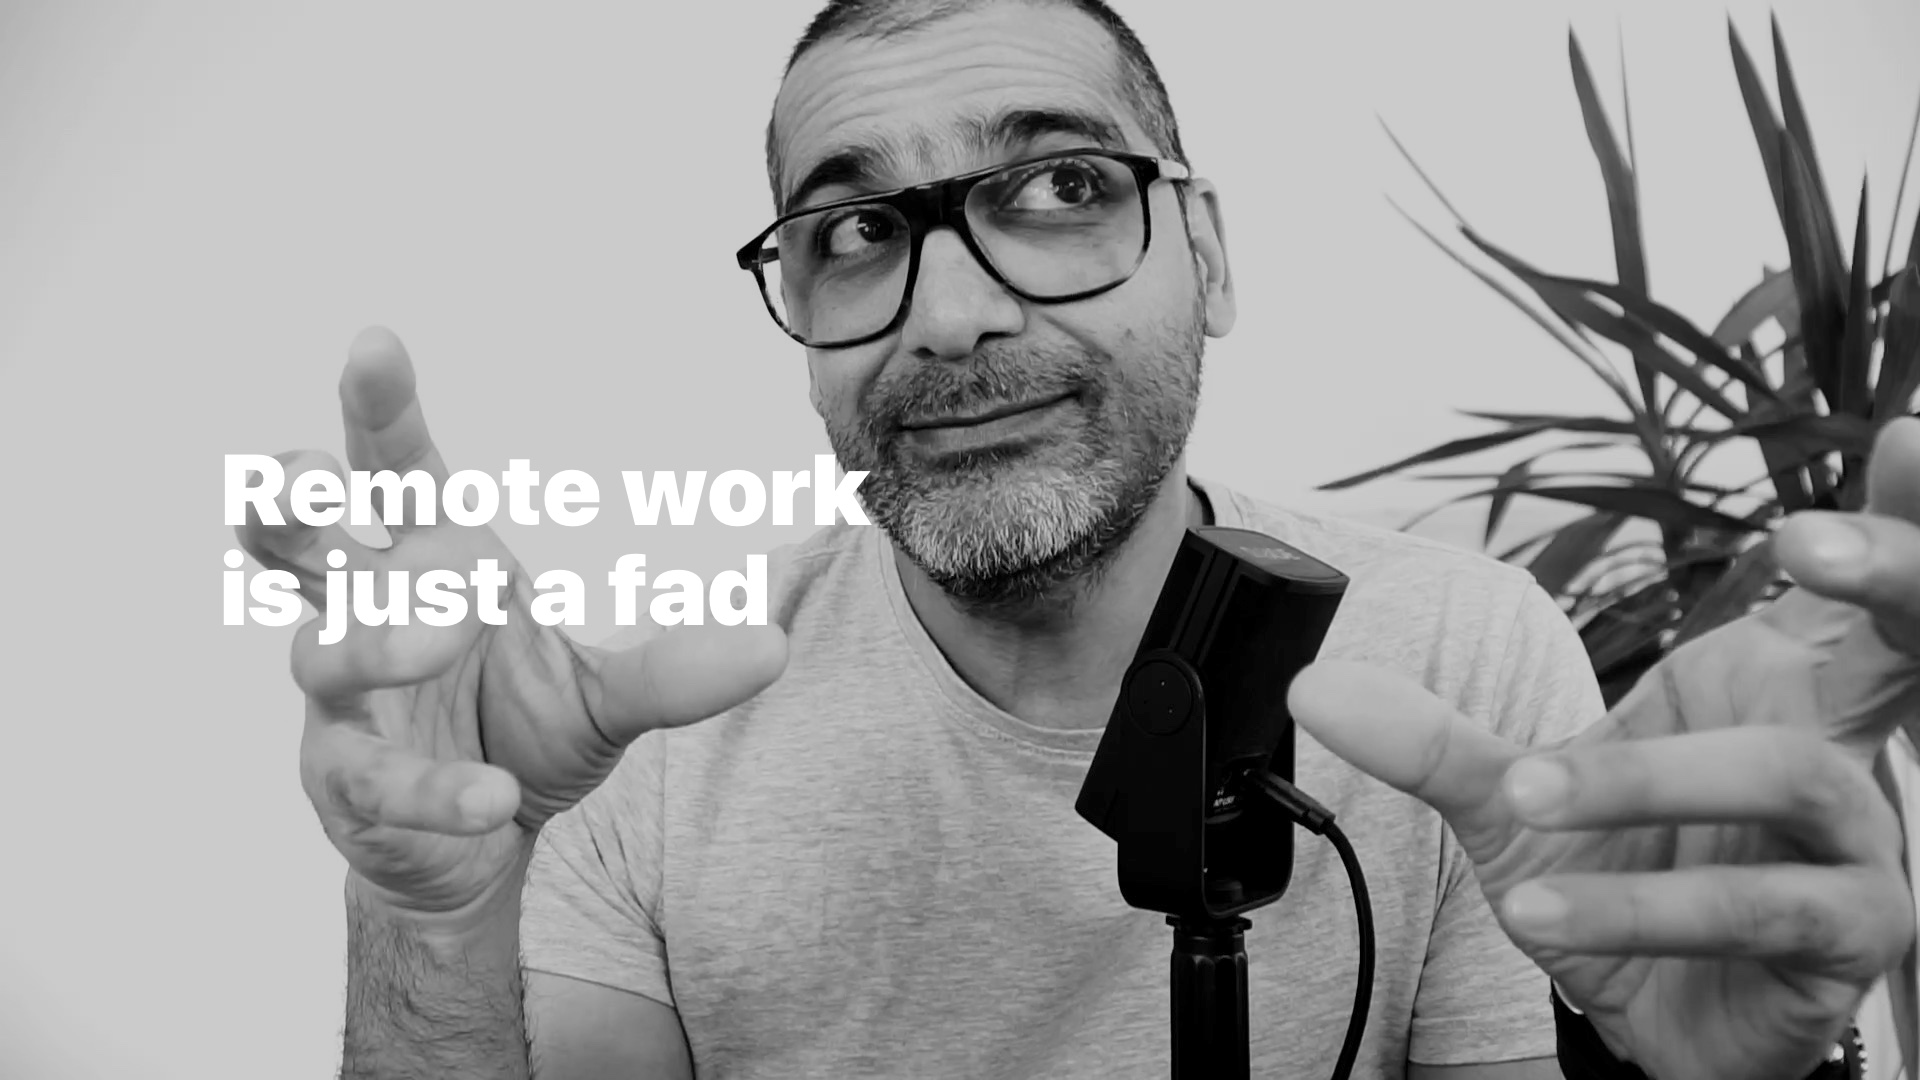 Remote work is just a fad